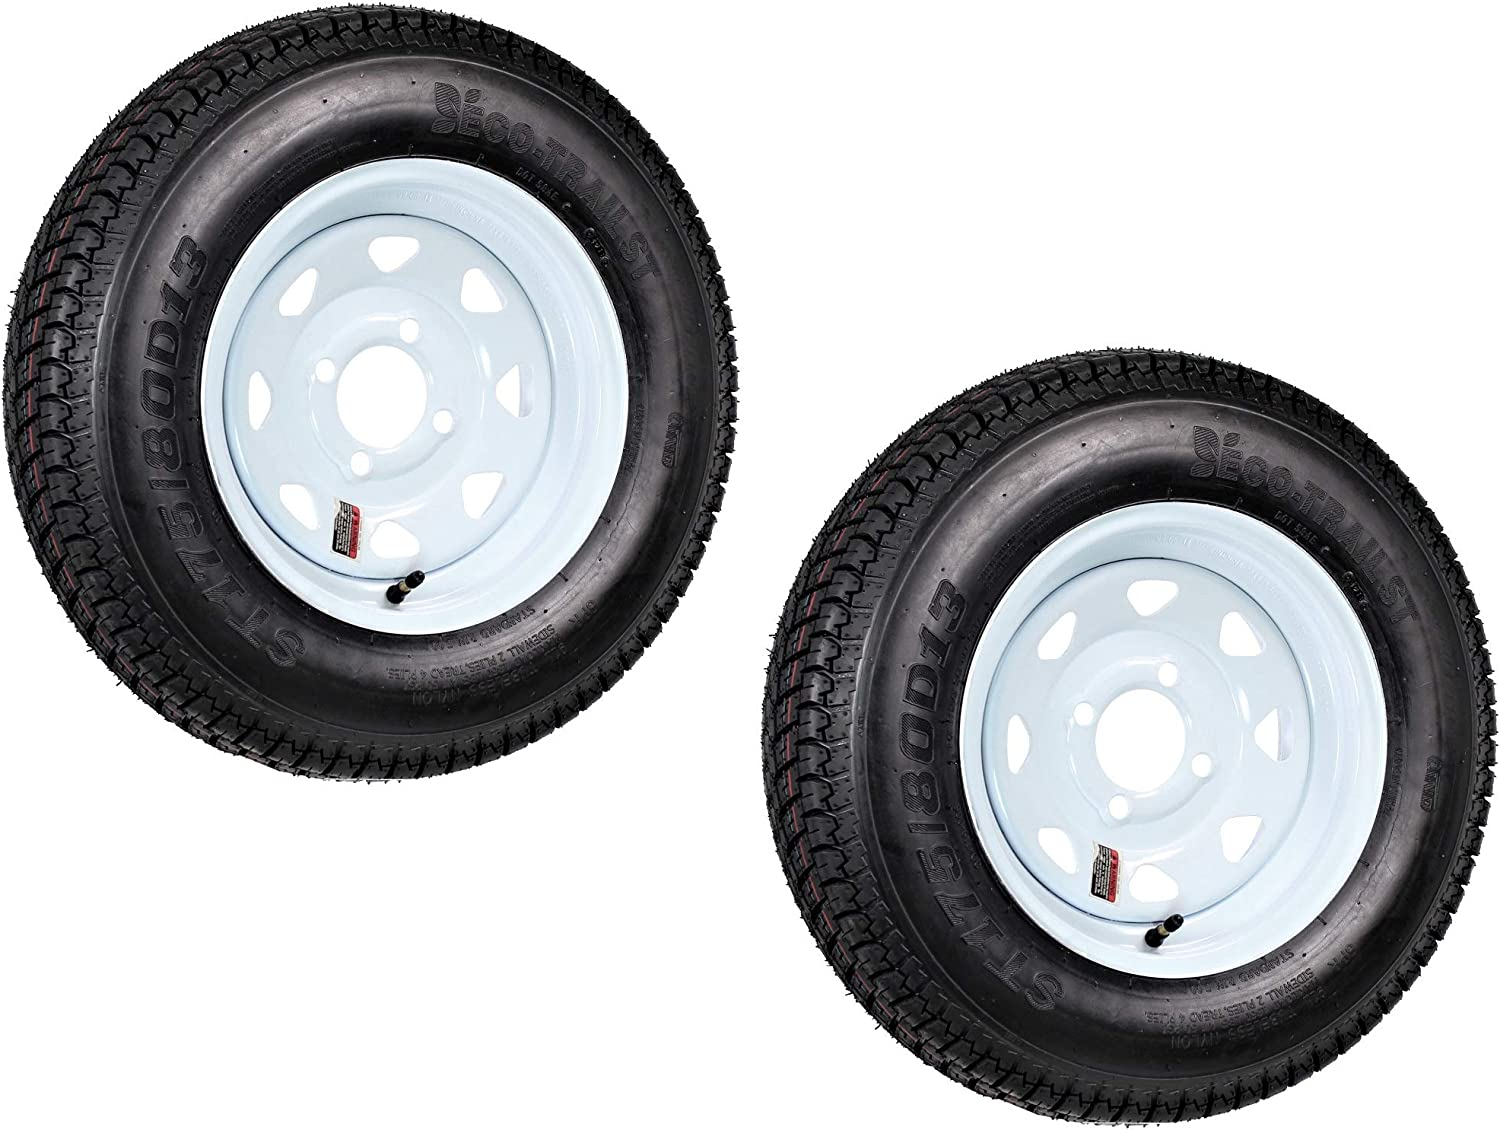 2-Pk Trailer Tire Rim ST175/80D13 13 in. Load C 4 Lug White Spoke Wheel